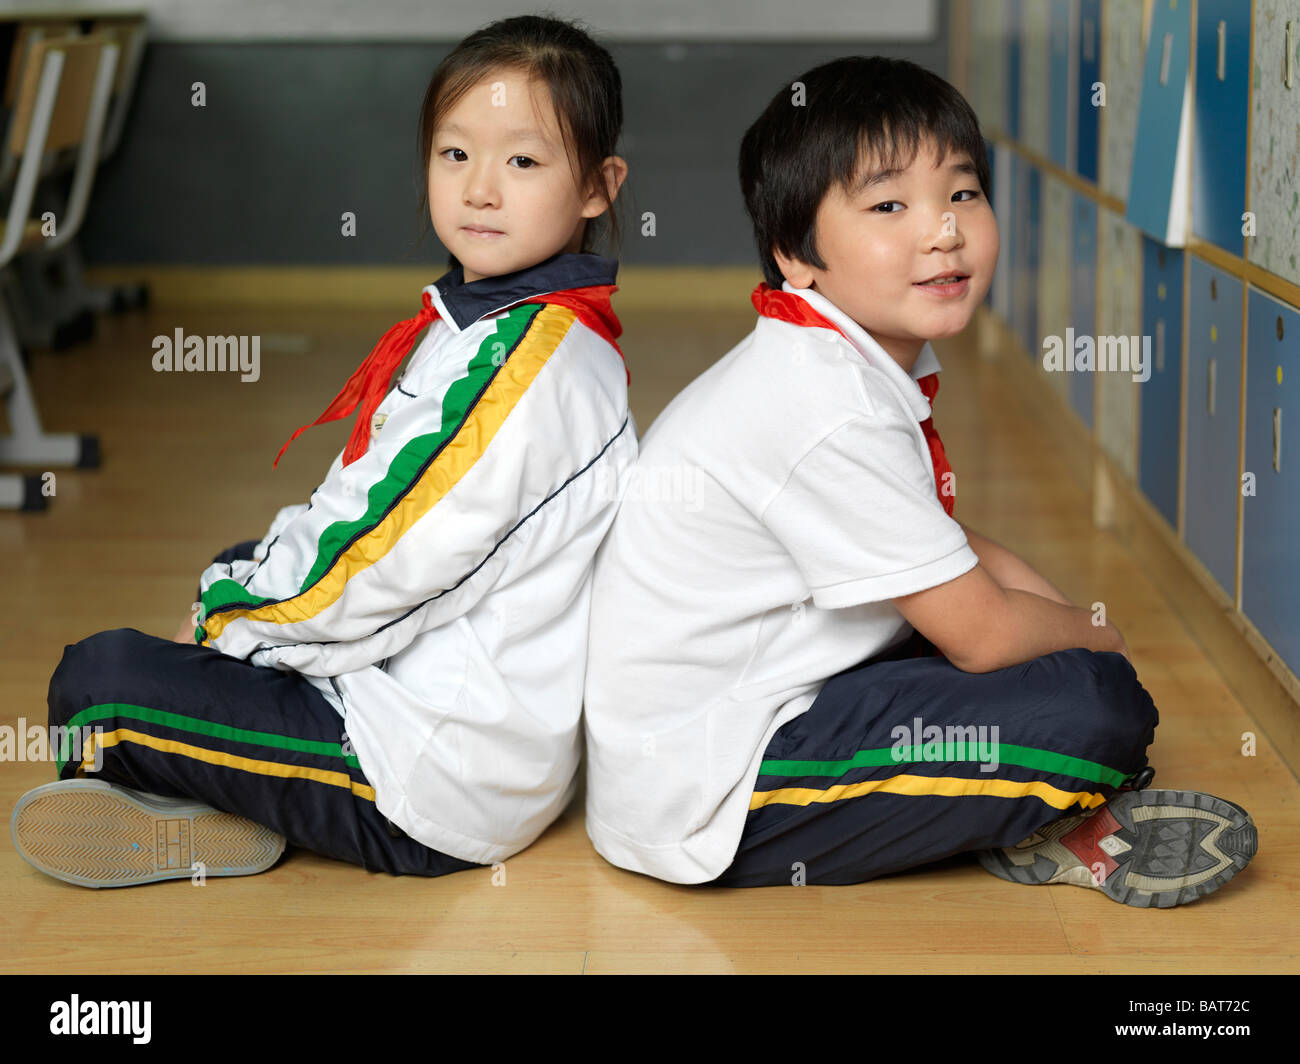 Two classmates sitting Indian-style on the floor of their classroom. - Stock  Image af70bf336f094